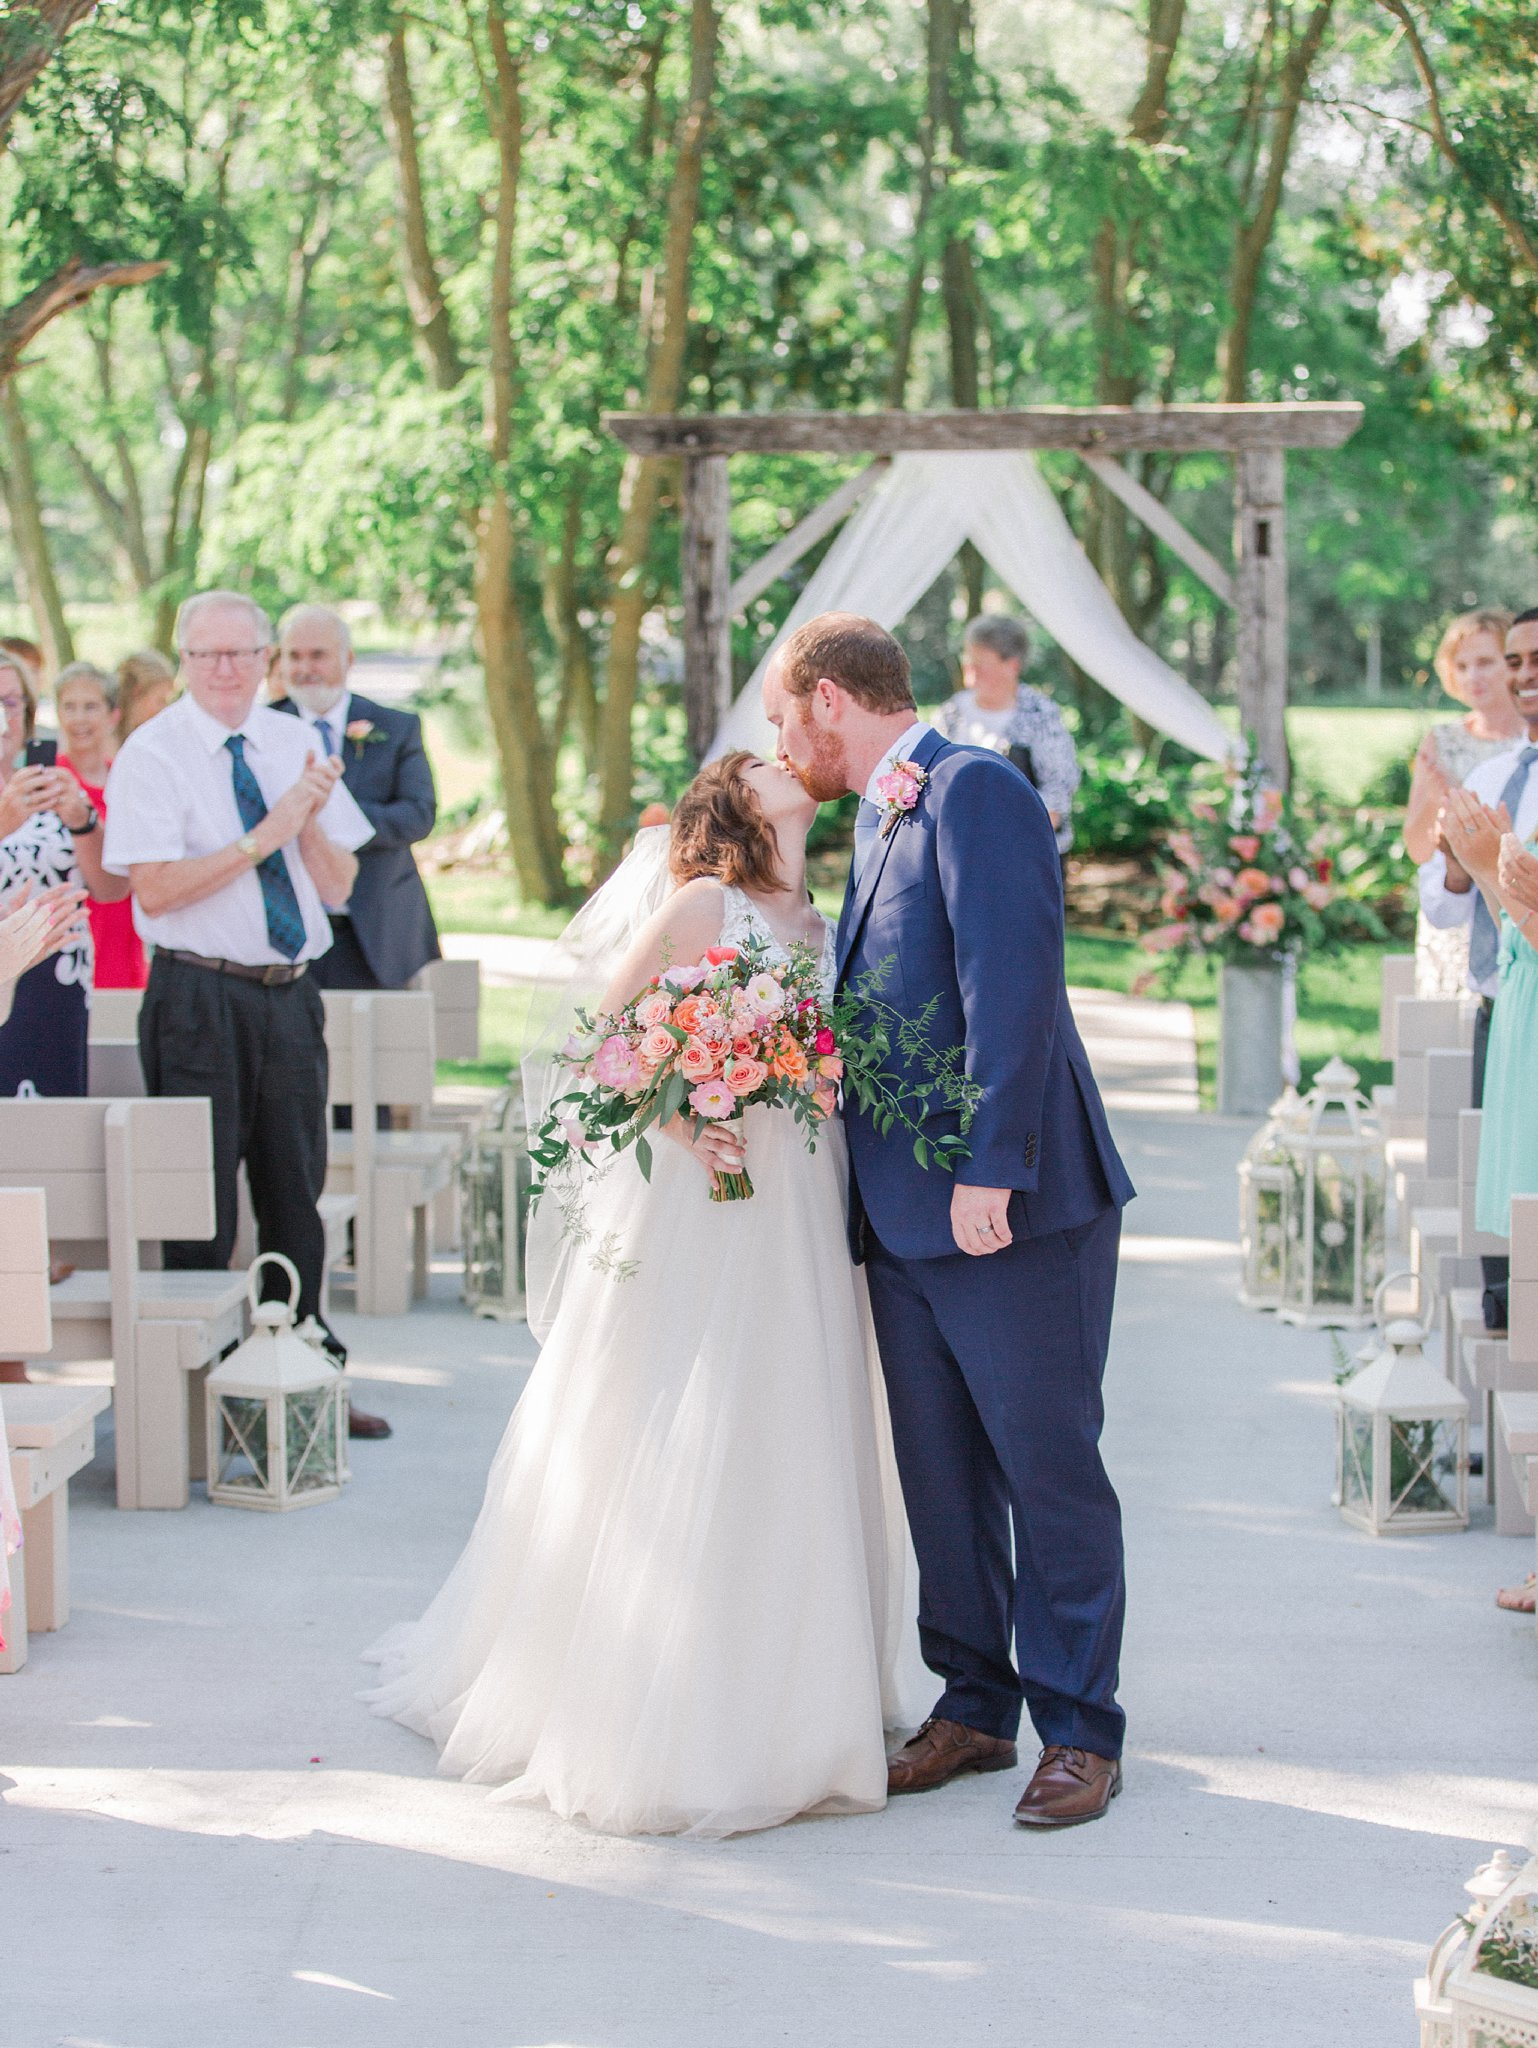 Second kiss down the aisle Dog-friendly wedding venue Ottawa Stonefields Amy Pinder Photography